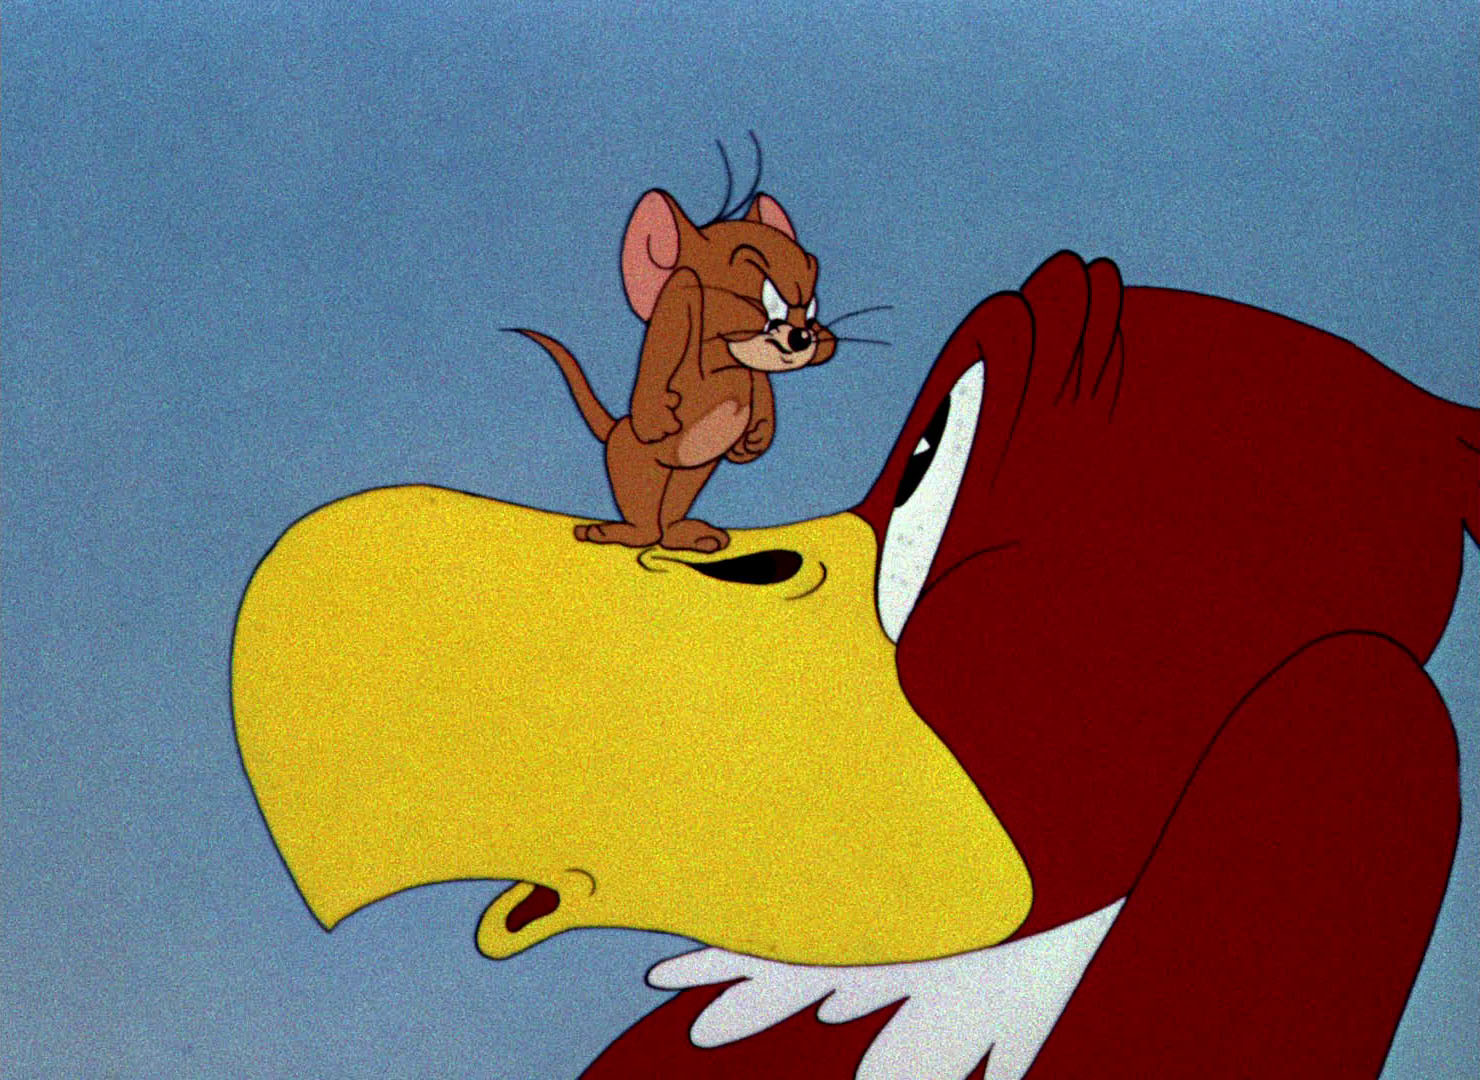 tom e jerry flirty birdy Tom e jerry - un condor innamorato (flirty birdy, 1945) tom e jerry - il gatto da un here are all of the videos that tom & jerry ita has uploaded to vimeo.